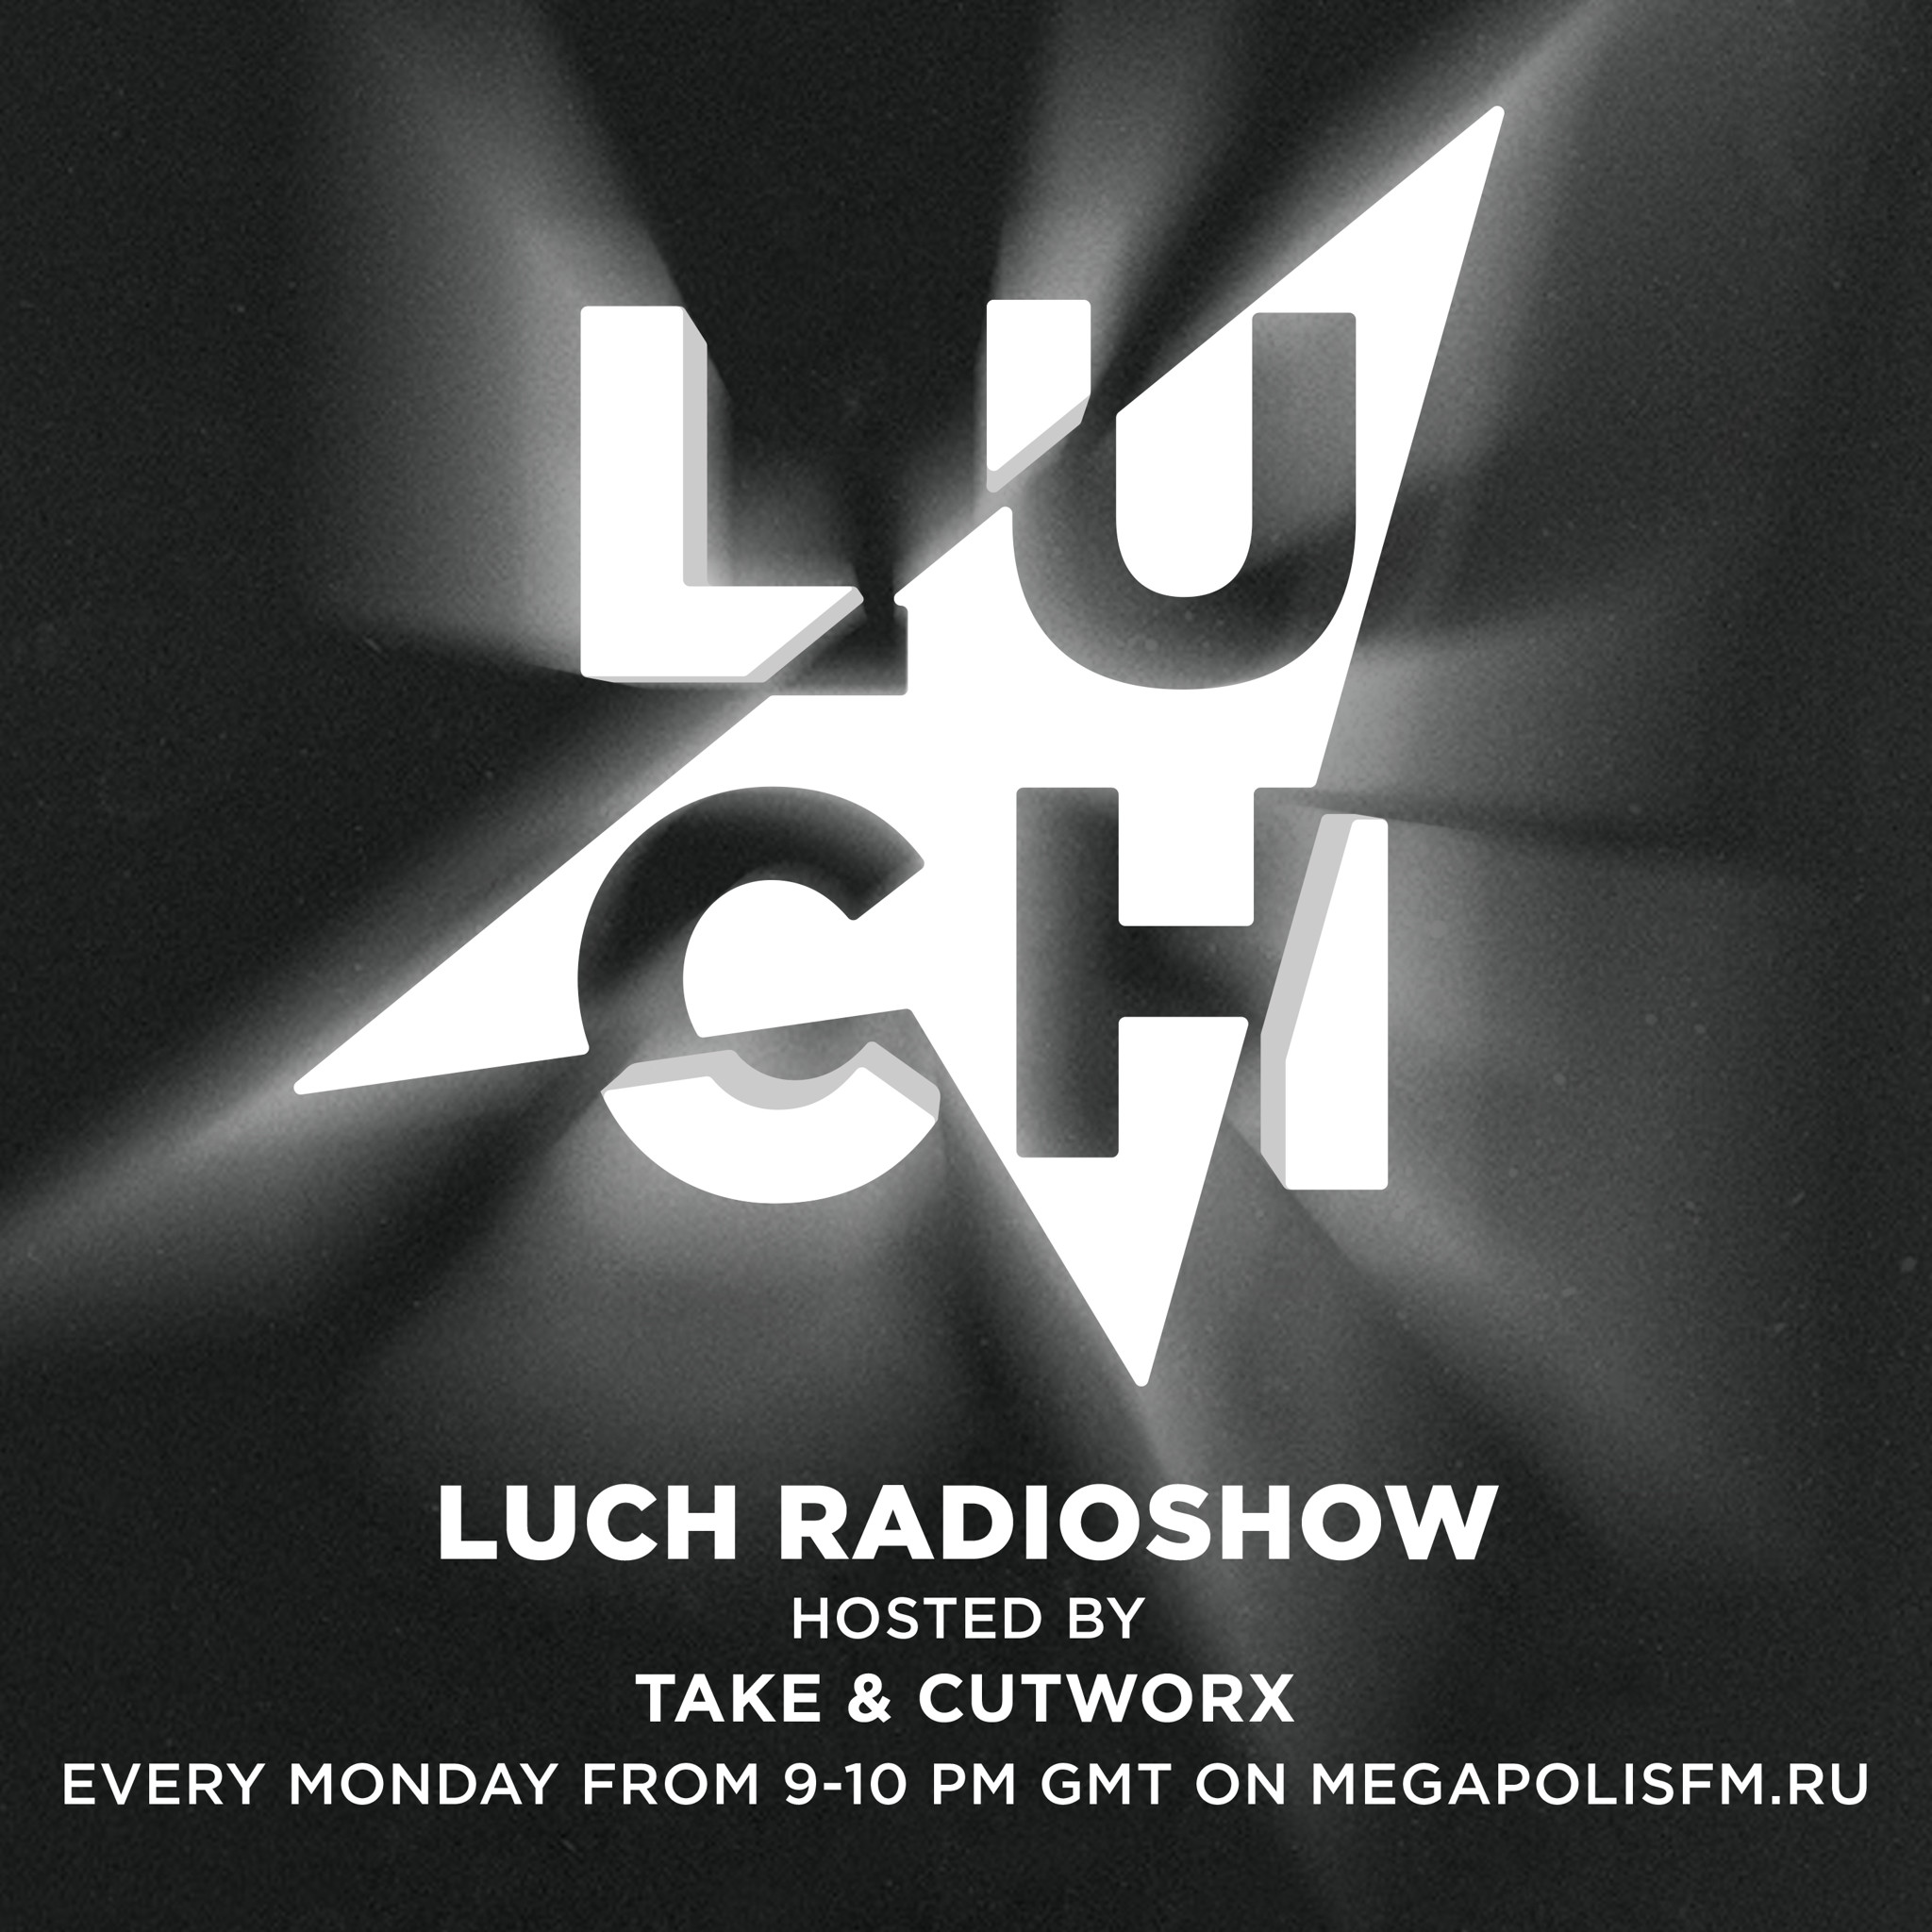 Take & Cutworx presents Luch Radioshow